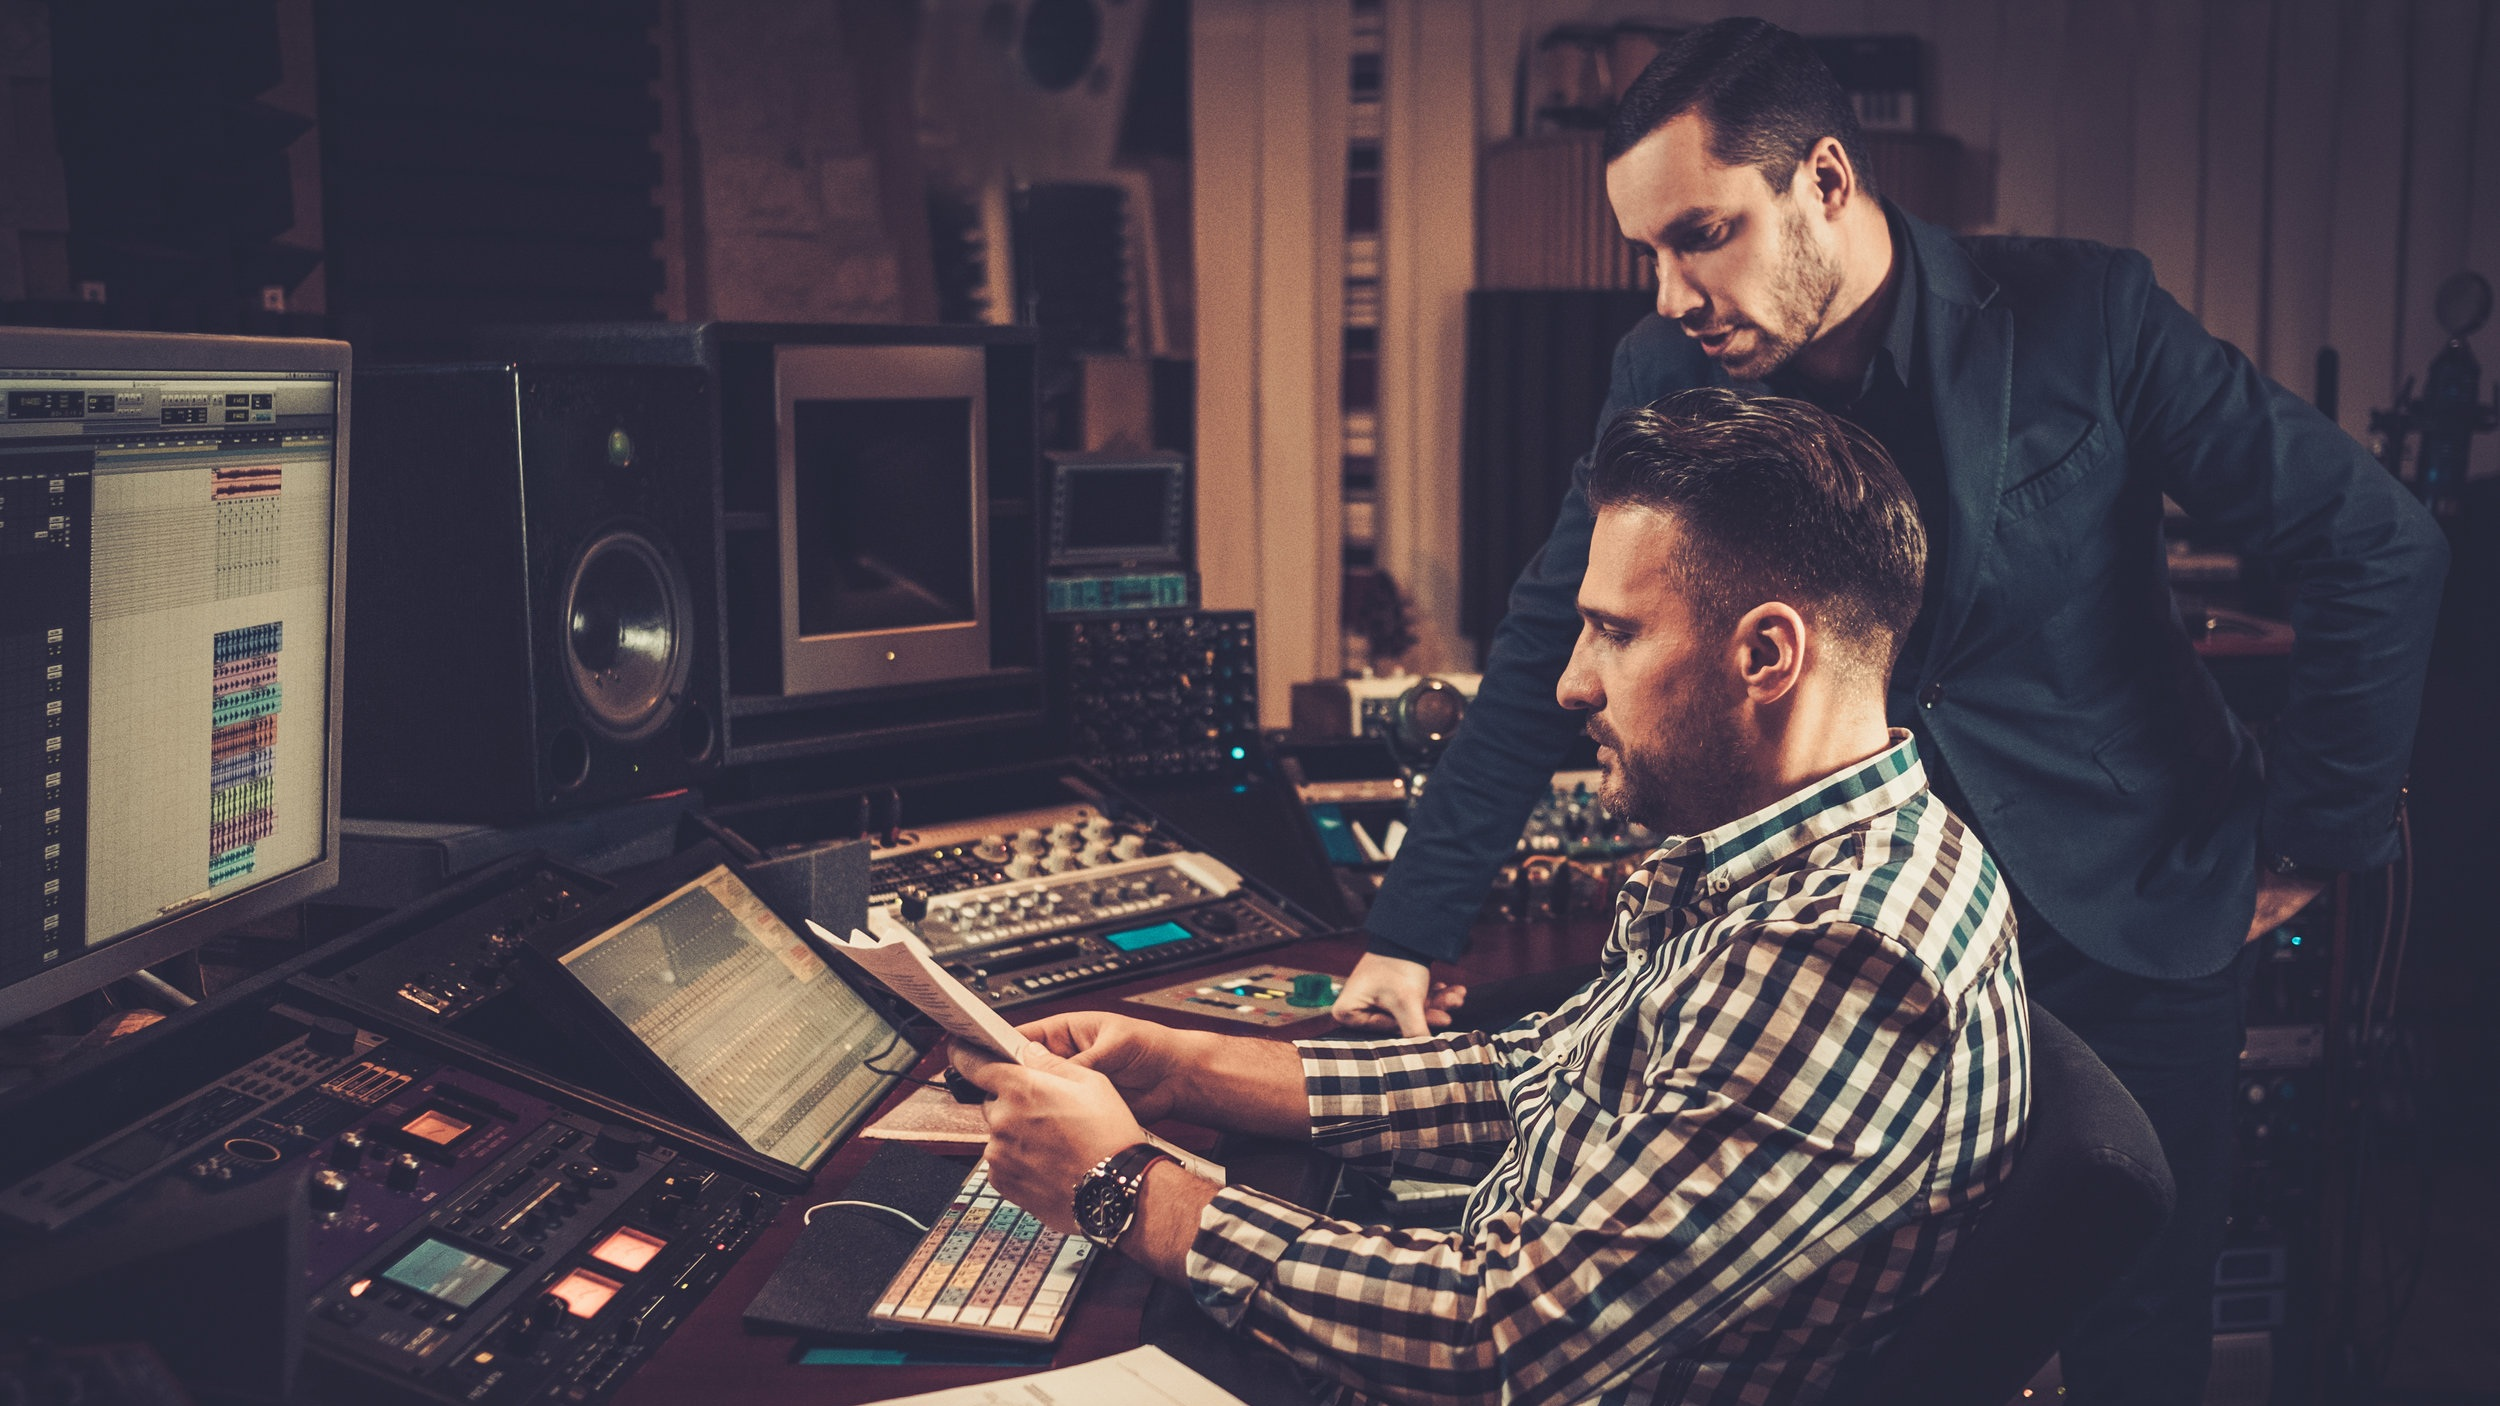 """Open All the Career Doors - The Complete Producer program builds your skills in a wide range of disciplines - music, post-production, sound design, audio engineering, and sound for picture and games. Only the Complete Producer offers this many career paths. Get the client to say """"yes"""" when opportunity comes - be prepared by learning everything about producing!"""